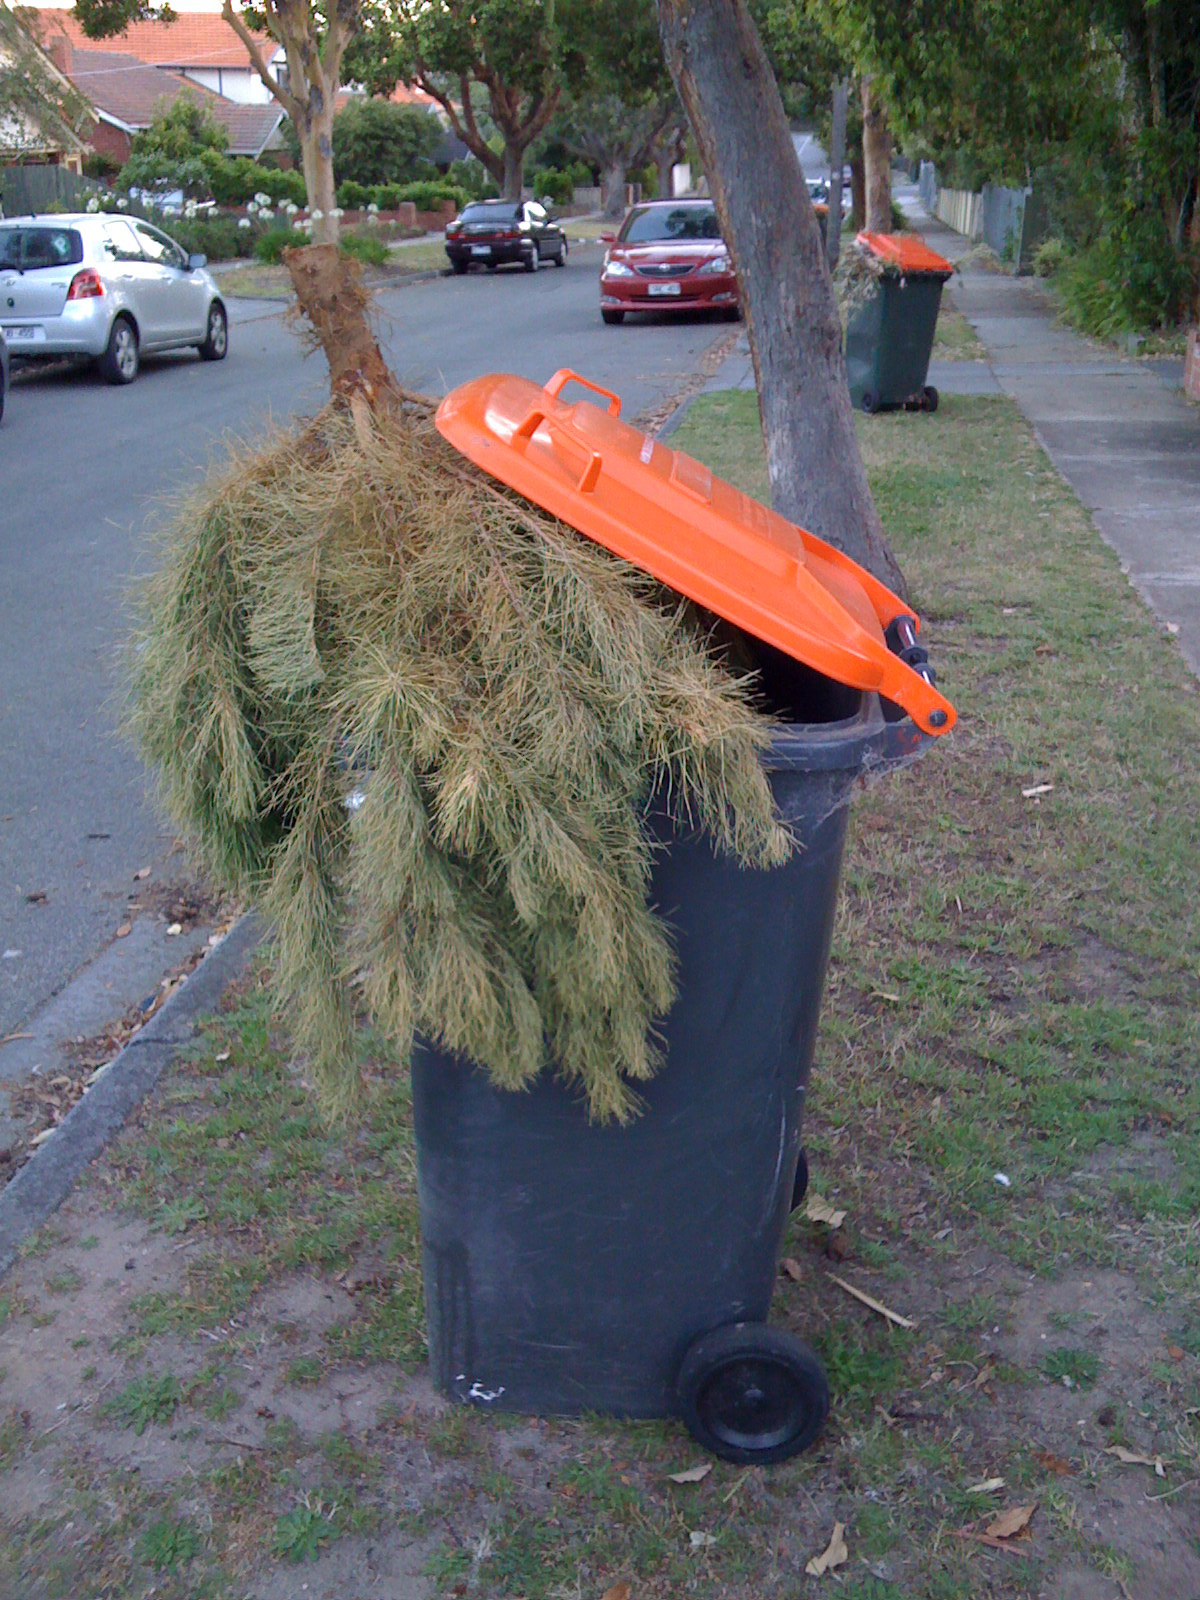 i did a quick google image search for dead christmas tree and was surprised at the